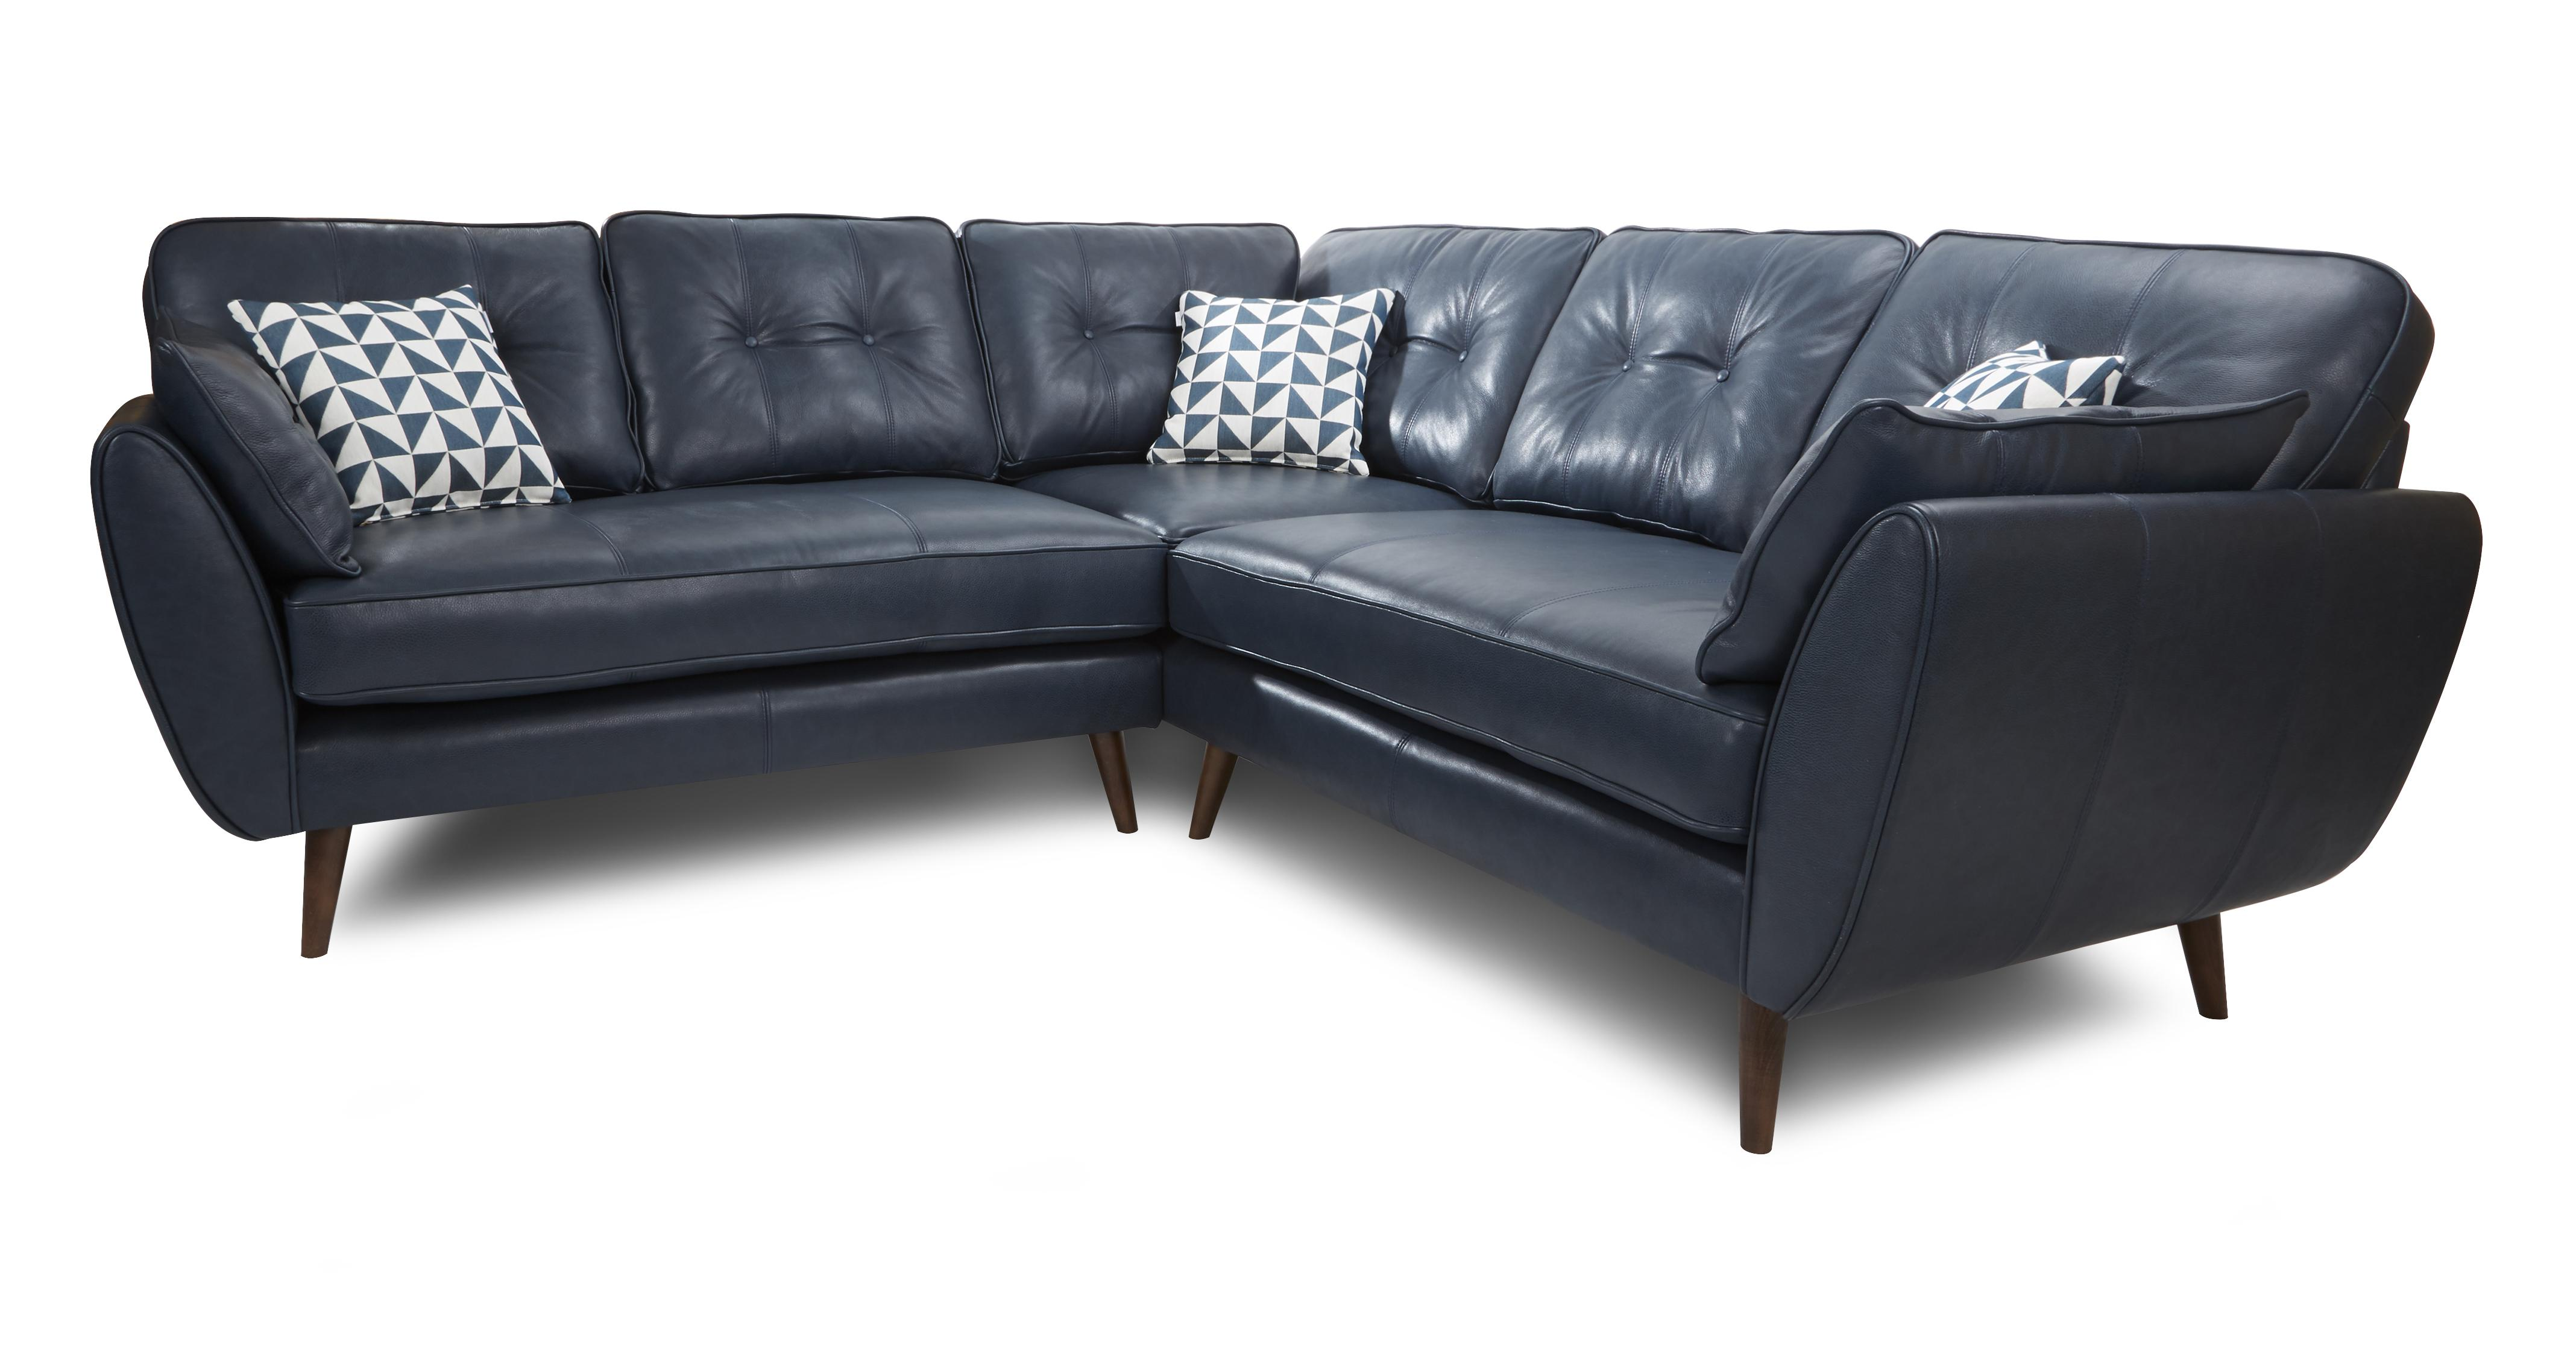 french connection slate sofa review how to clean dirty cloth dfs zinc brokeasshome